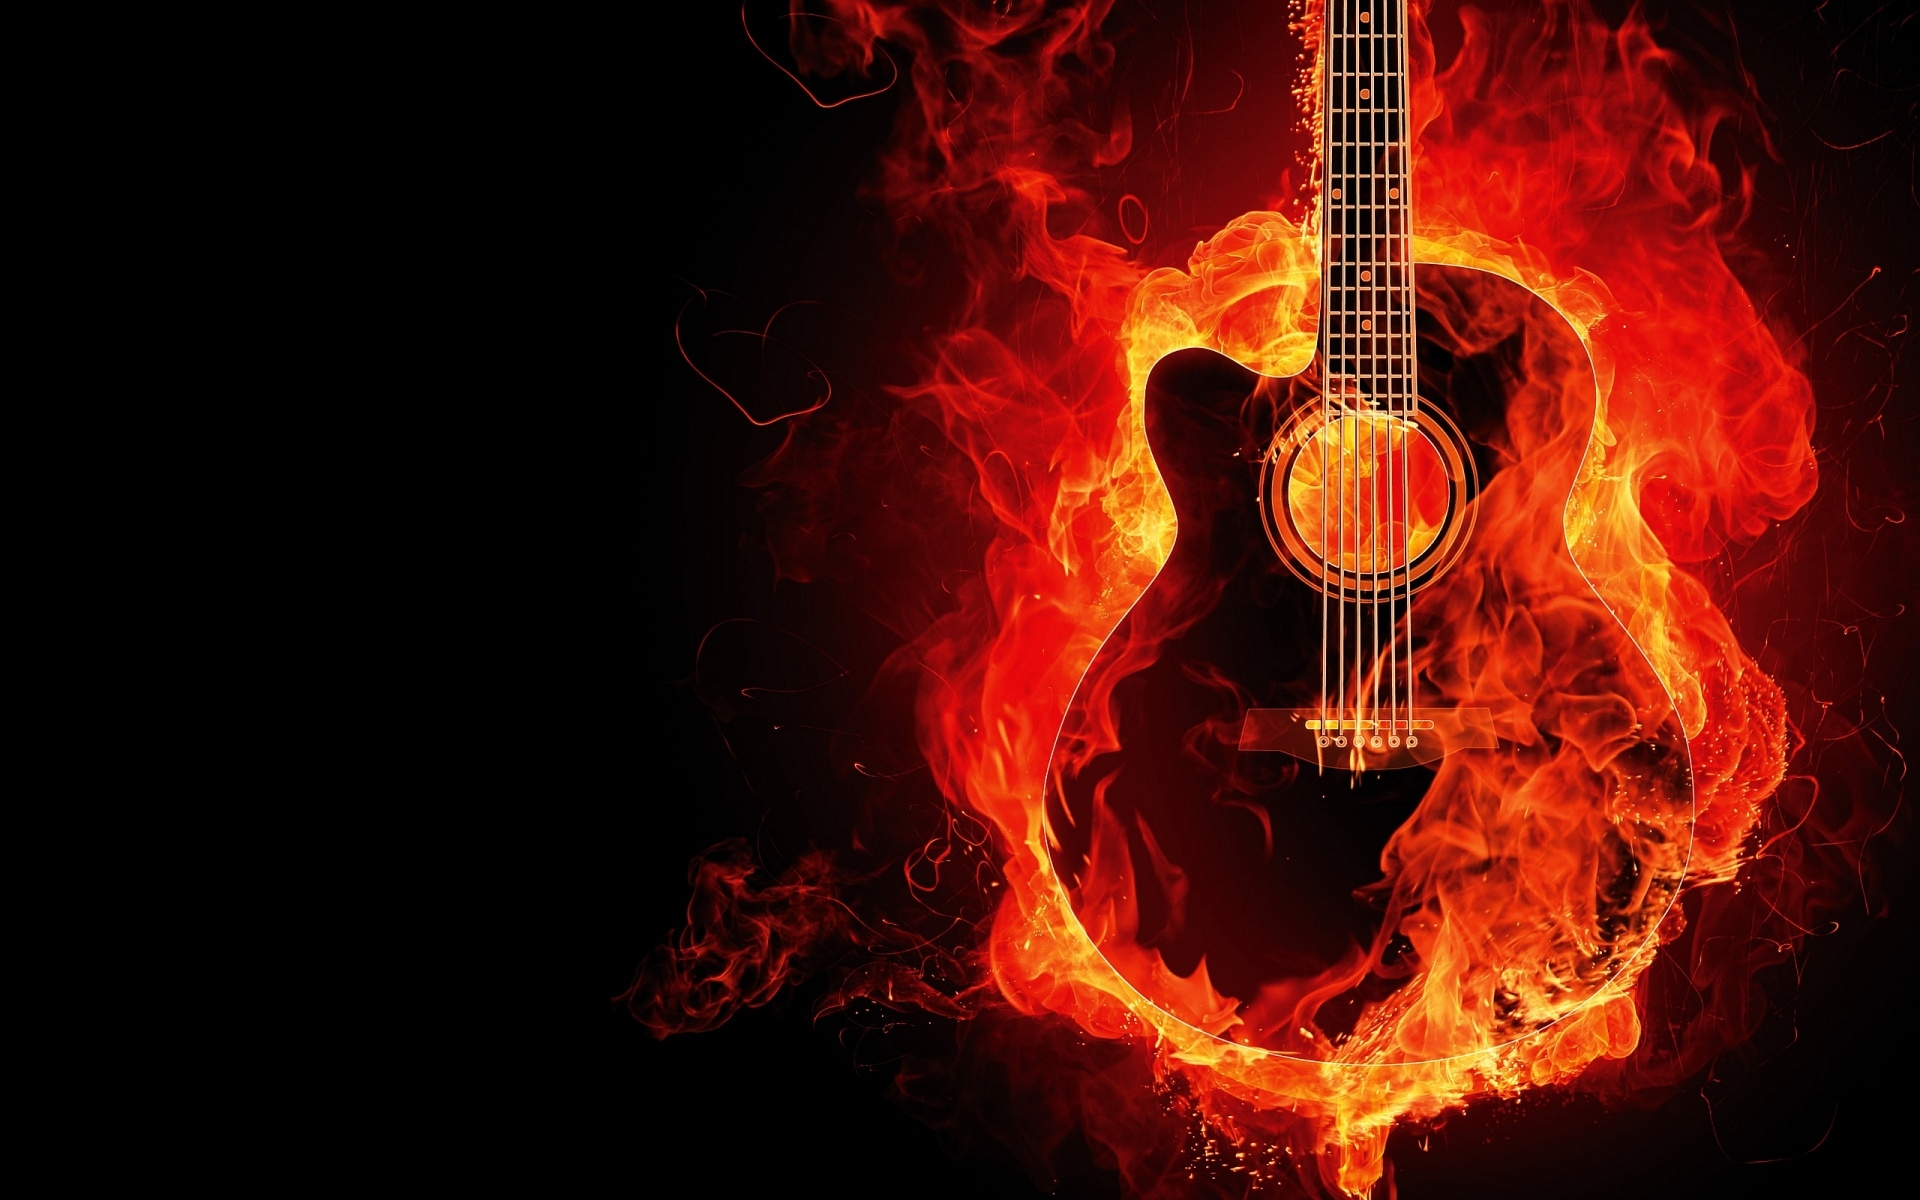 Free-cool-guitar-backgrounds-Download-Cool-Guitar-Backgrounds-afari-for-Free-cool-guit-wallpaper-wp3605813